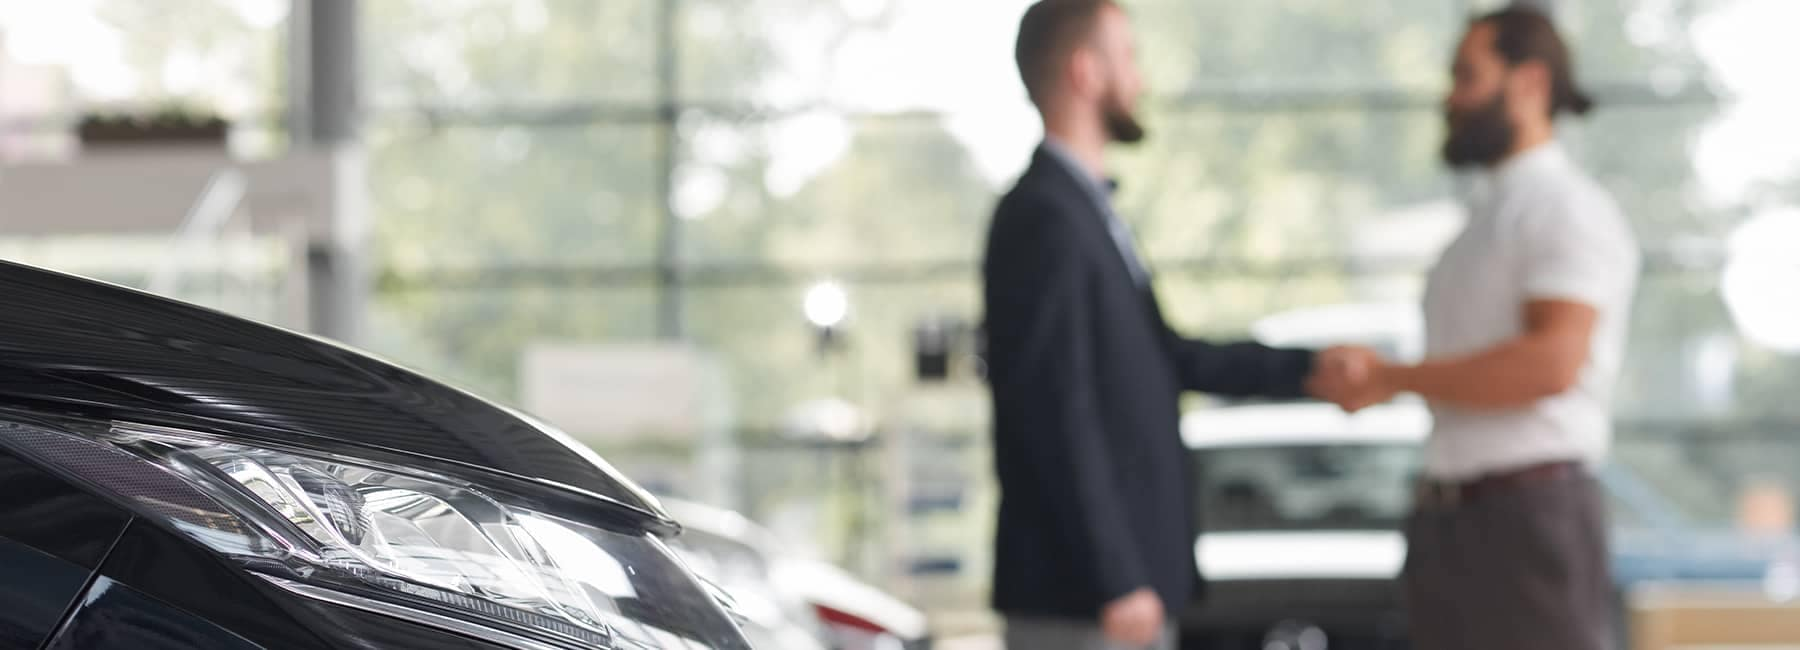 A car salesman and customer shake hands after agreeing on a purchase price